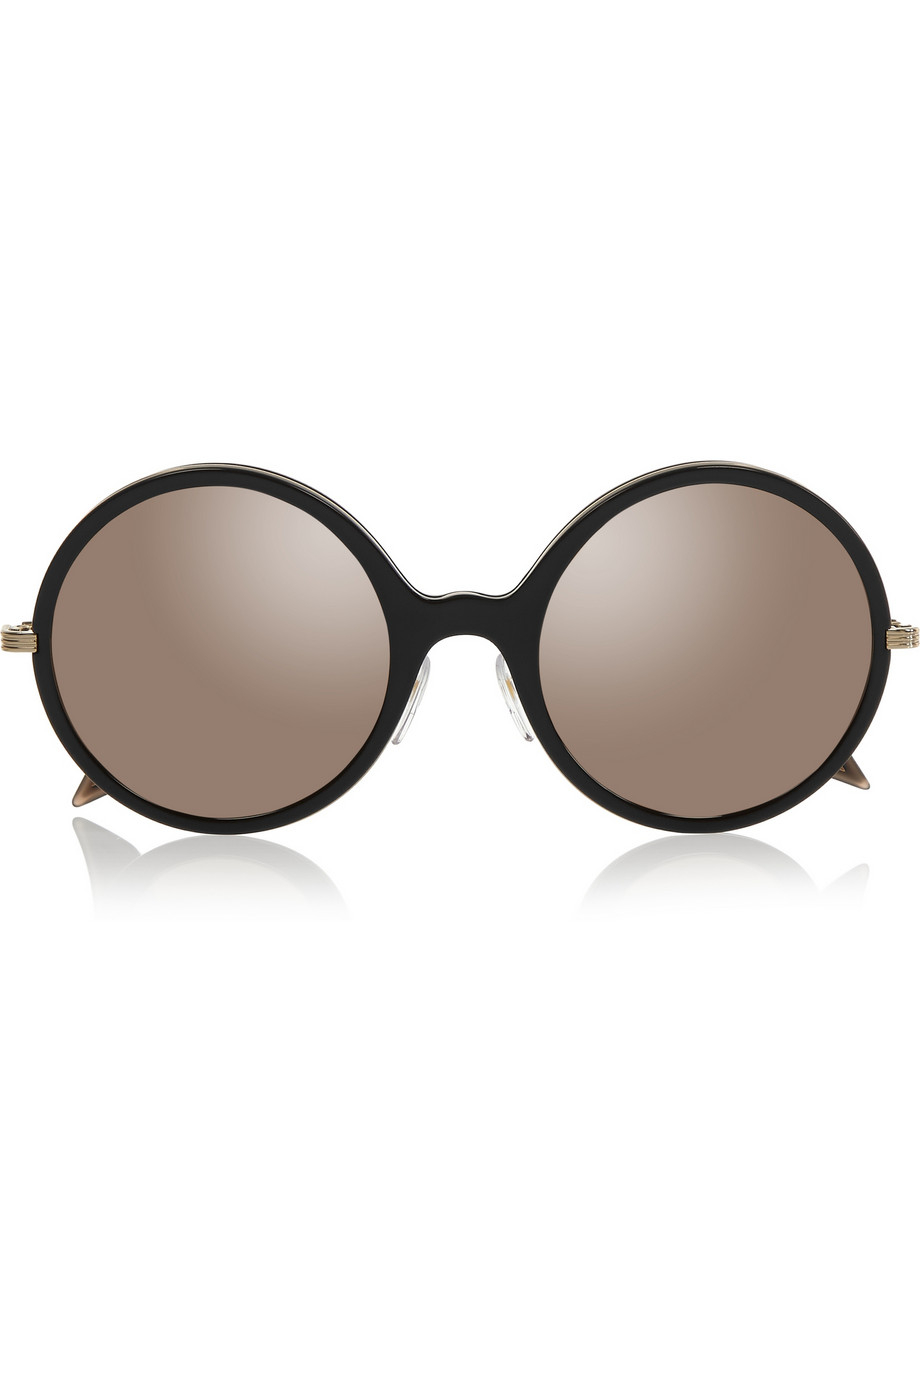 Victoria beckham Round-Frame Acetate And Gold-Plated ...